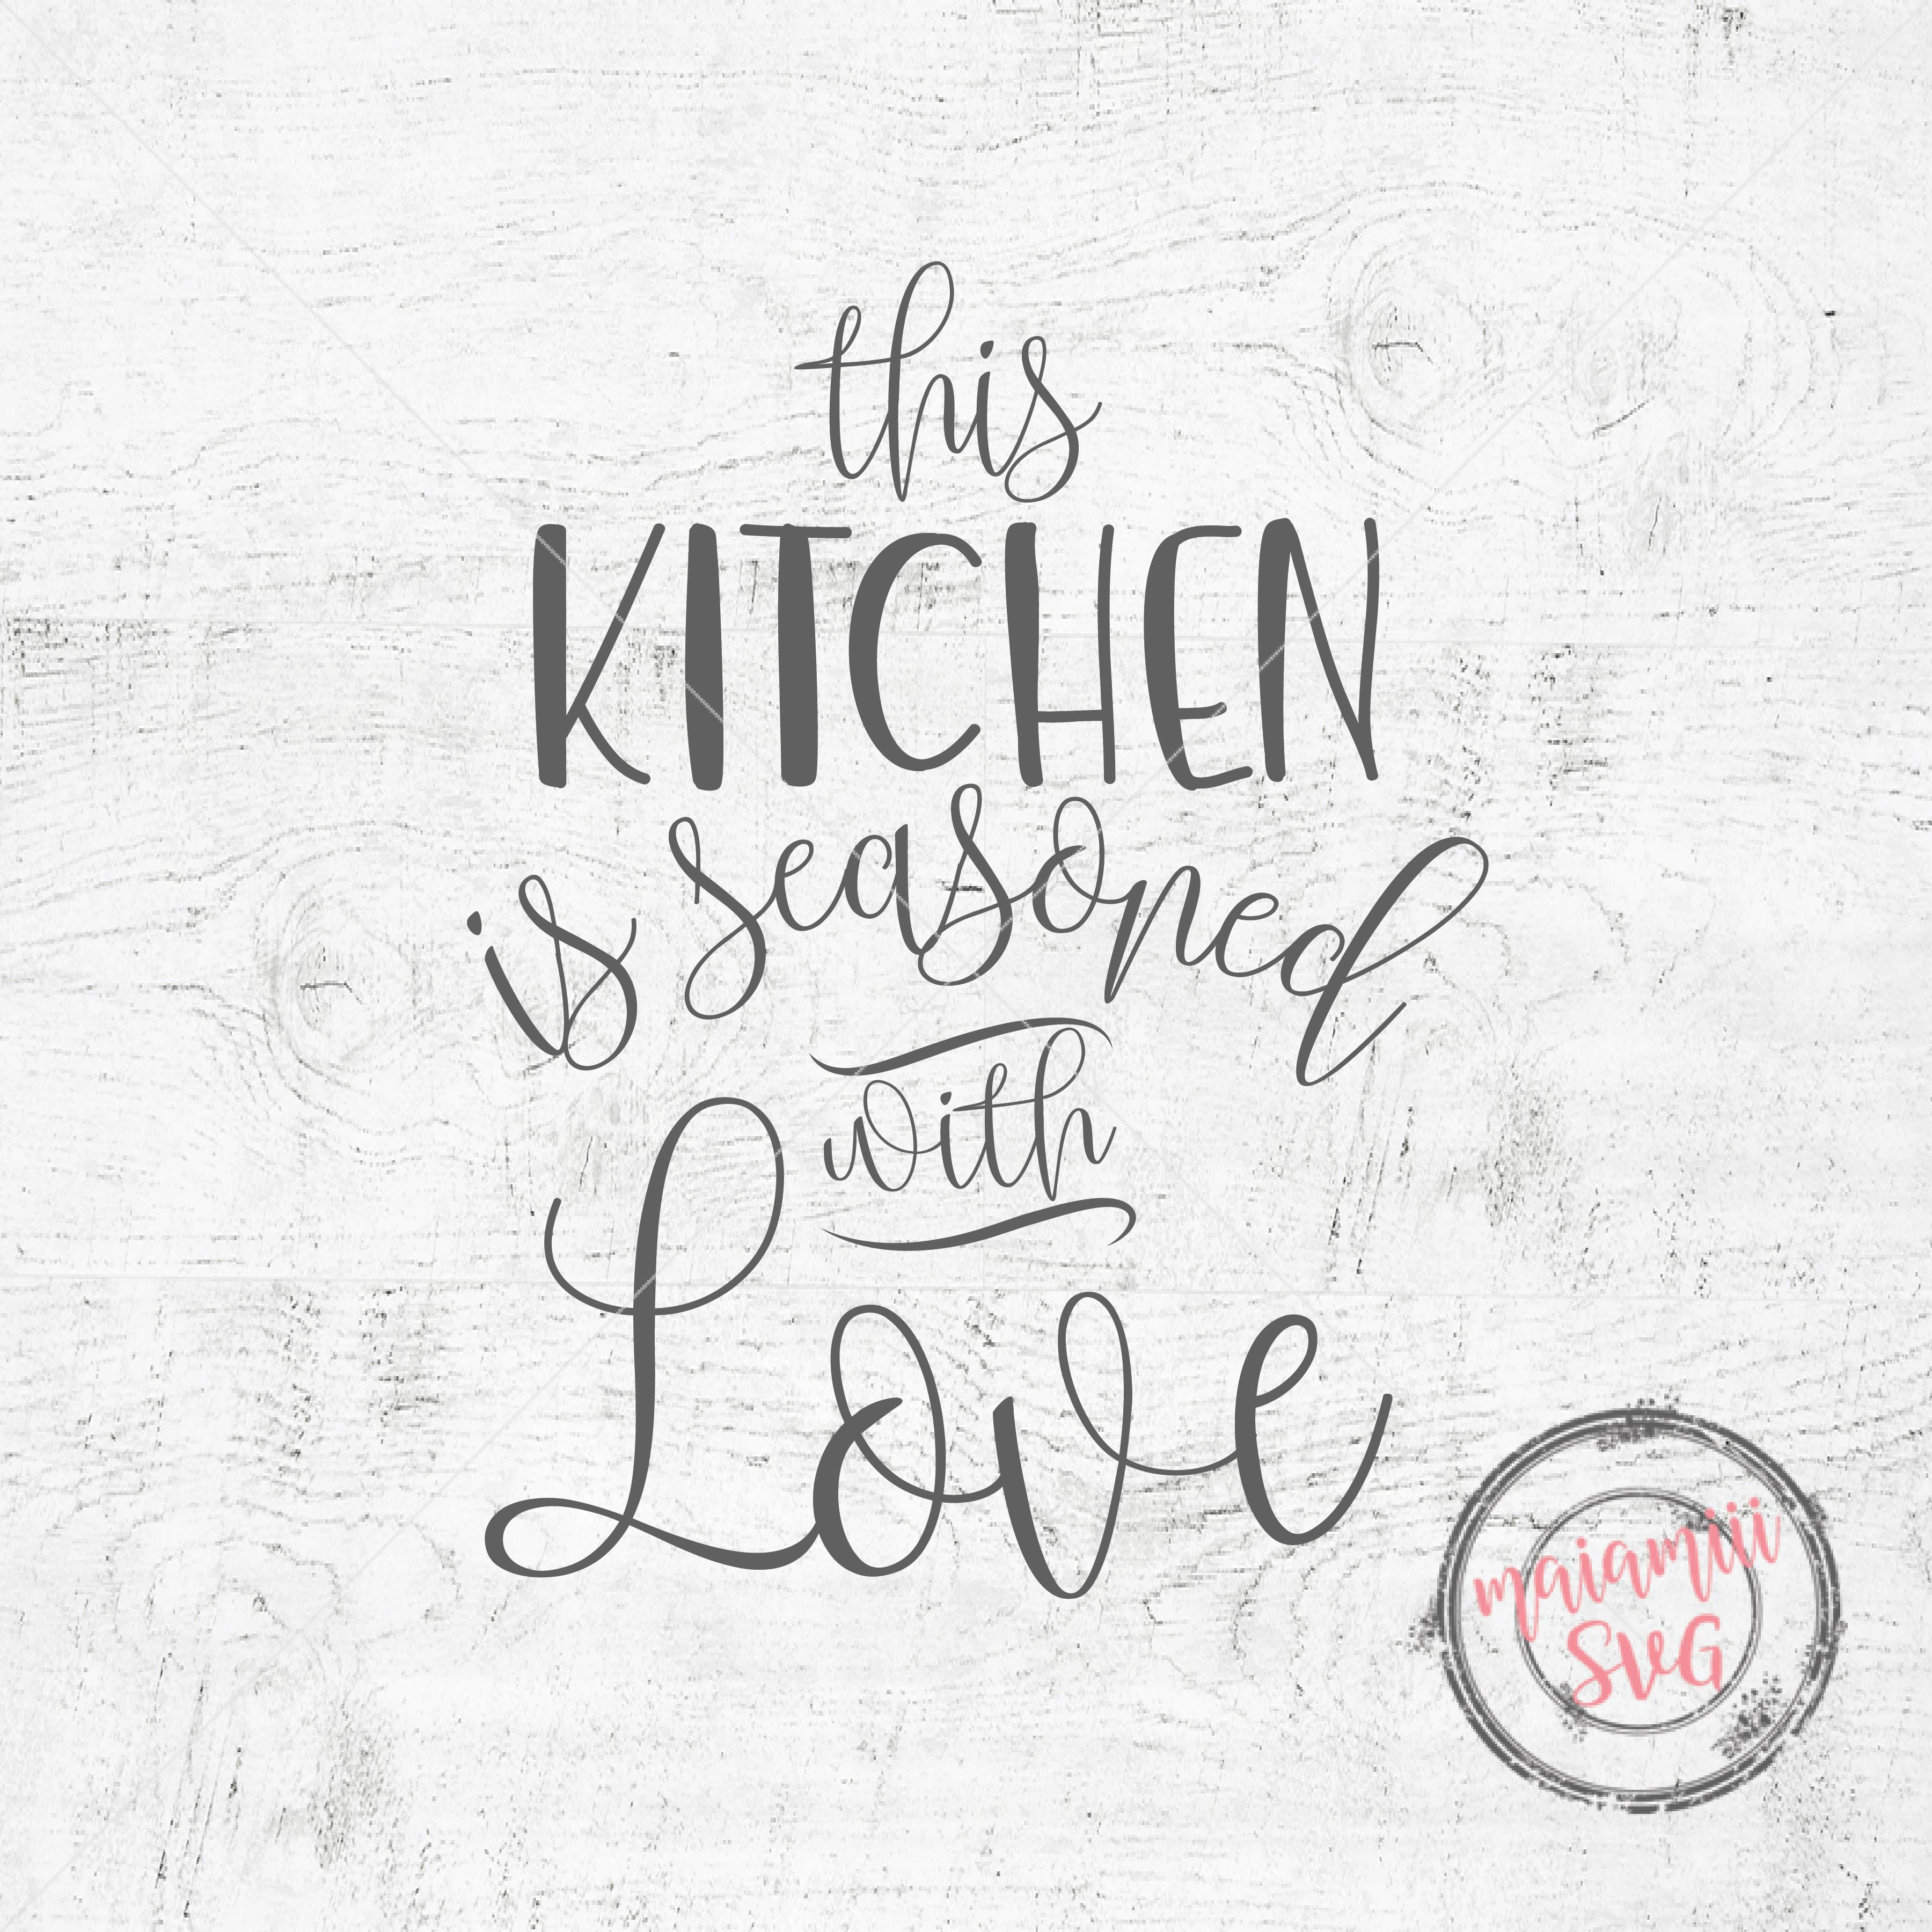 808+ This Kitchen Is Seasoned With Love Svg by CalaDesign